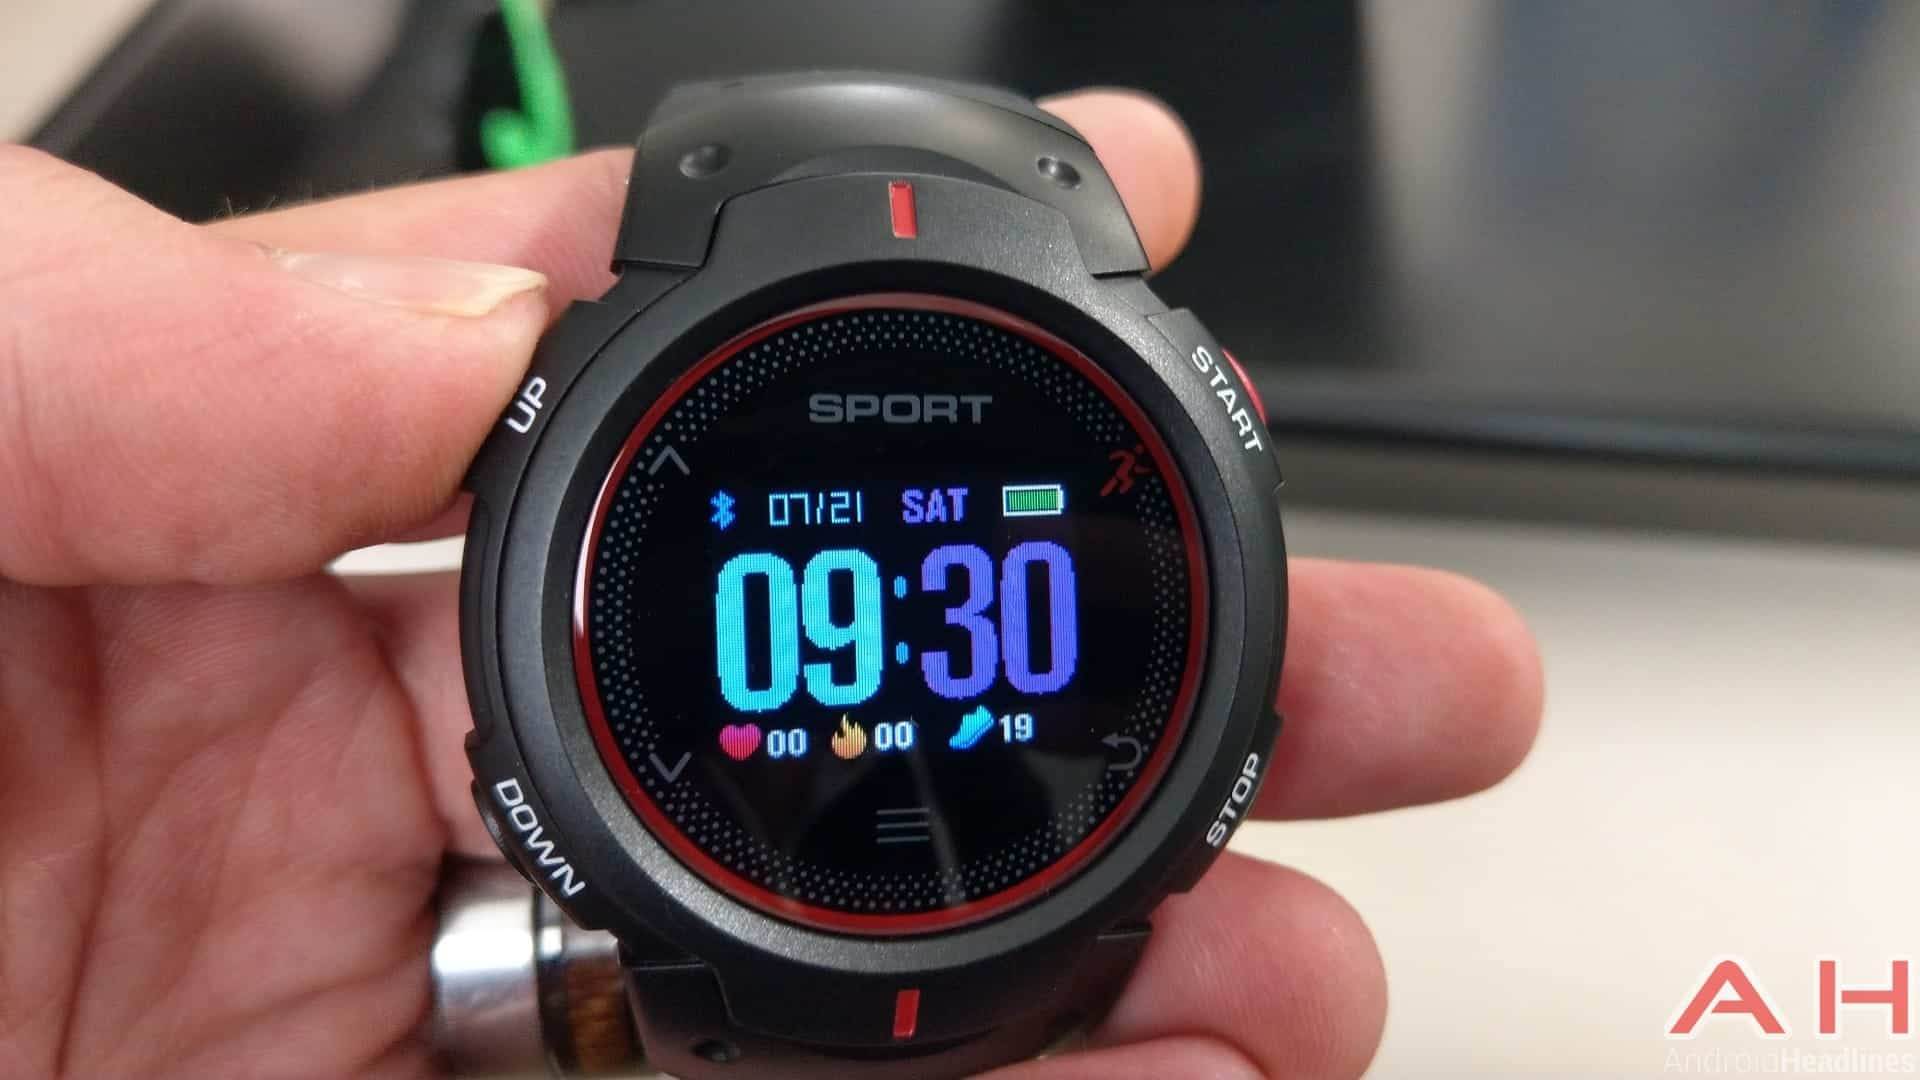 NO.1 F13 Smartwatch Review Software Gallery 24 AH